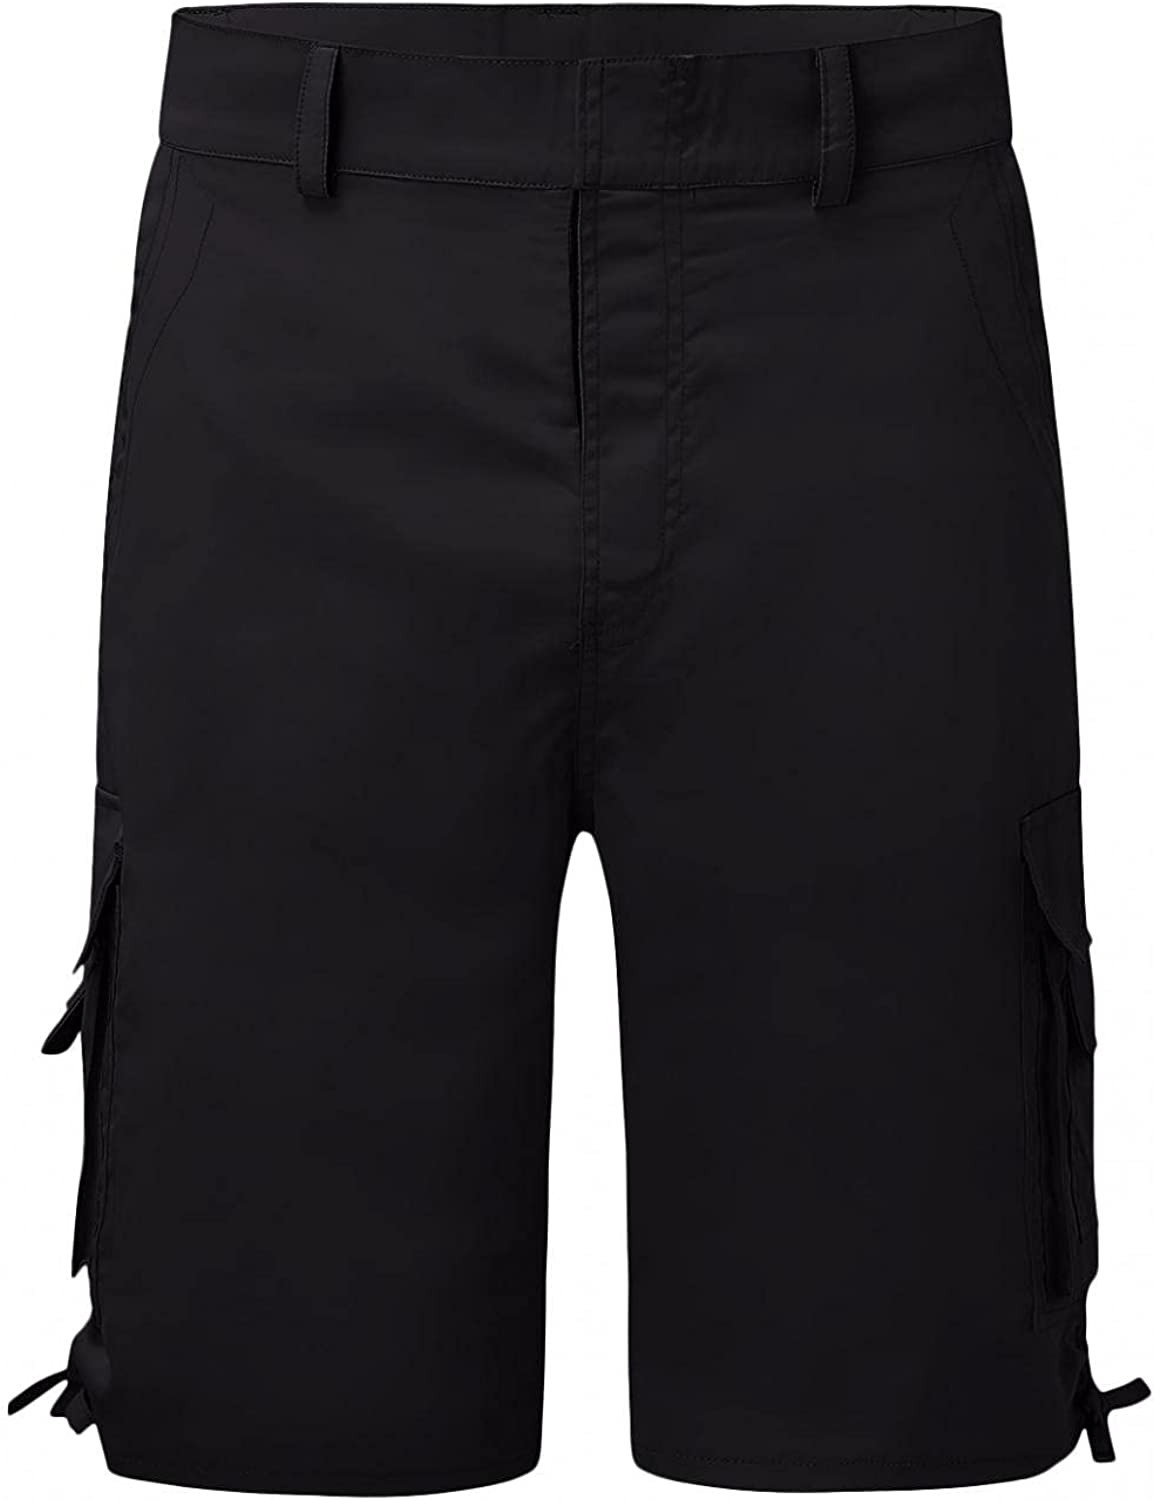 FUNEY Men's Twill Cargo Shorts Classic Fit Flat Front Stretch Solid Pleated Chino Tactical Shorts Big and Tall Bermuda Shorts